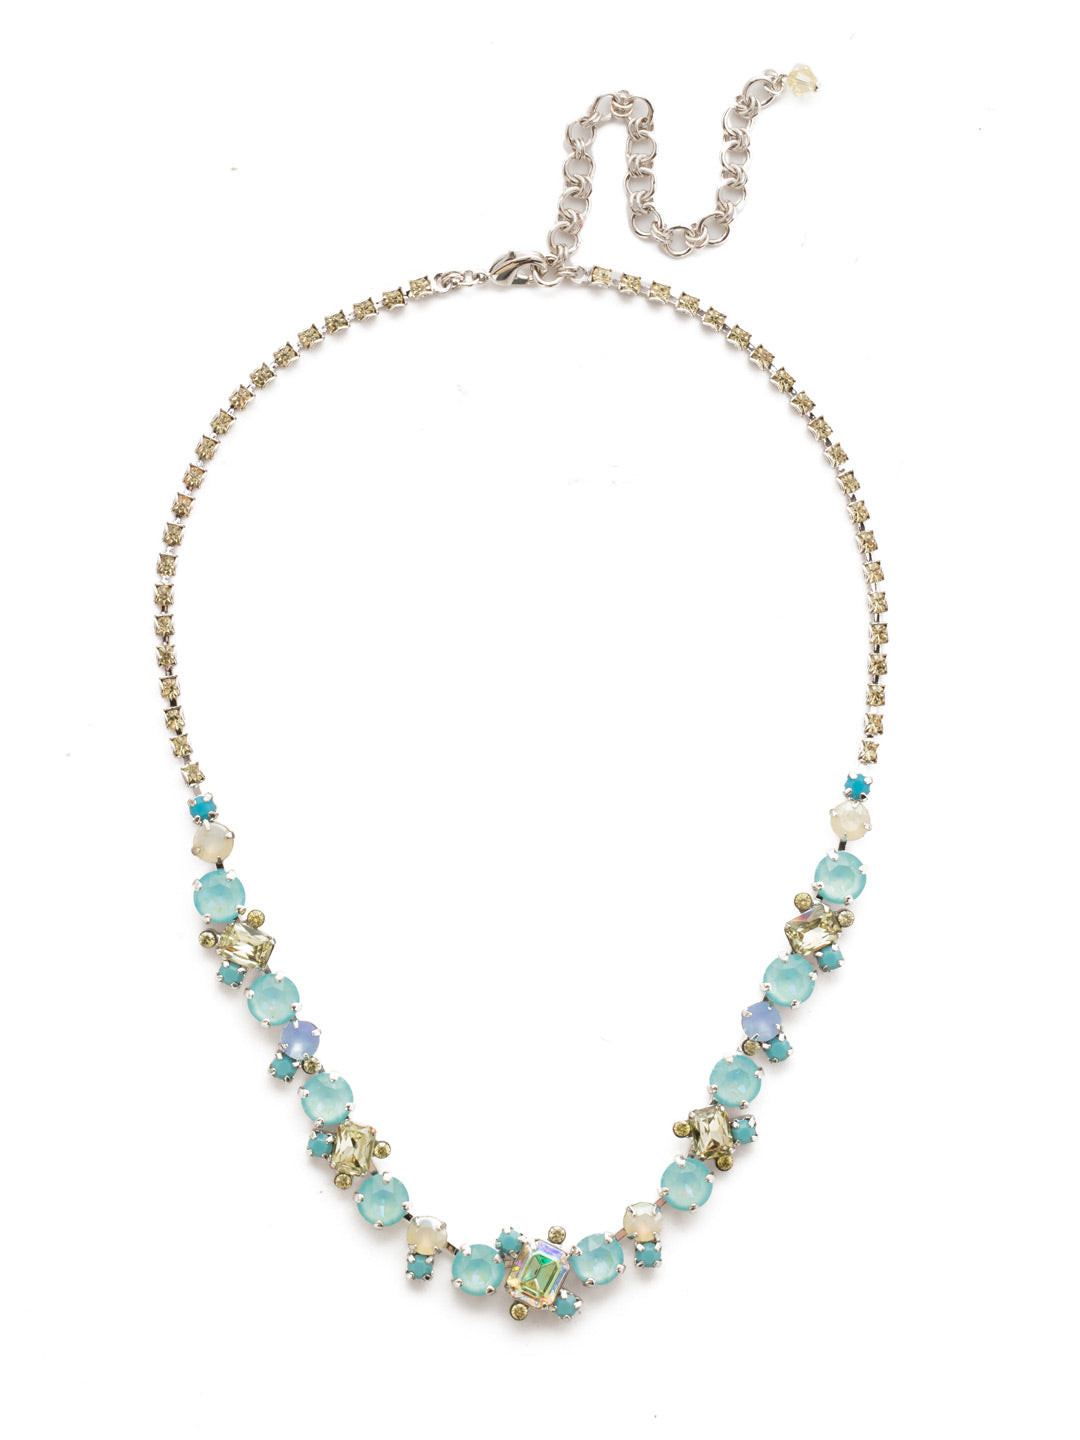 Sophisticated Tennis Necklace - NDK17RHTHT